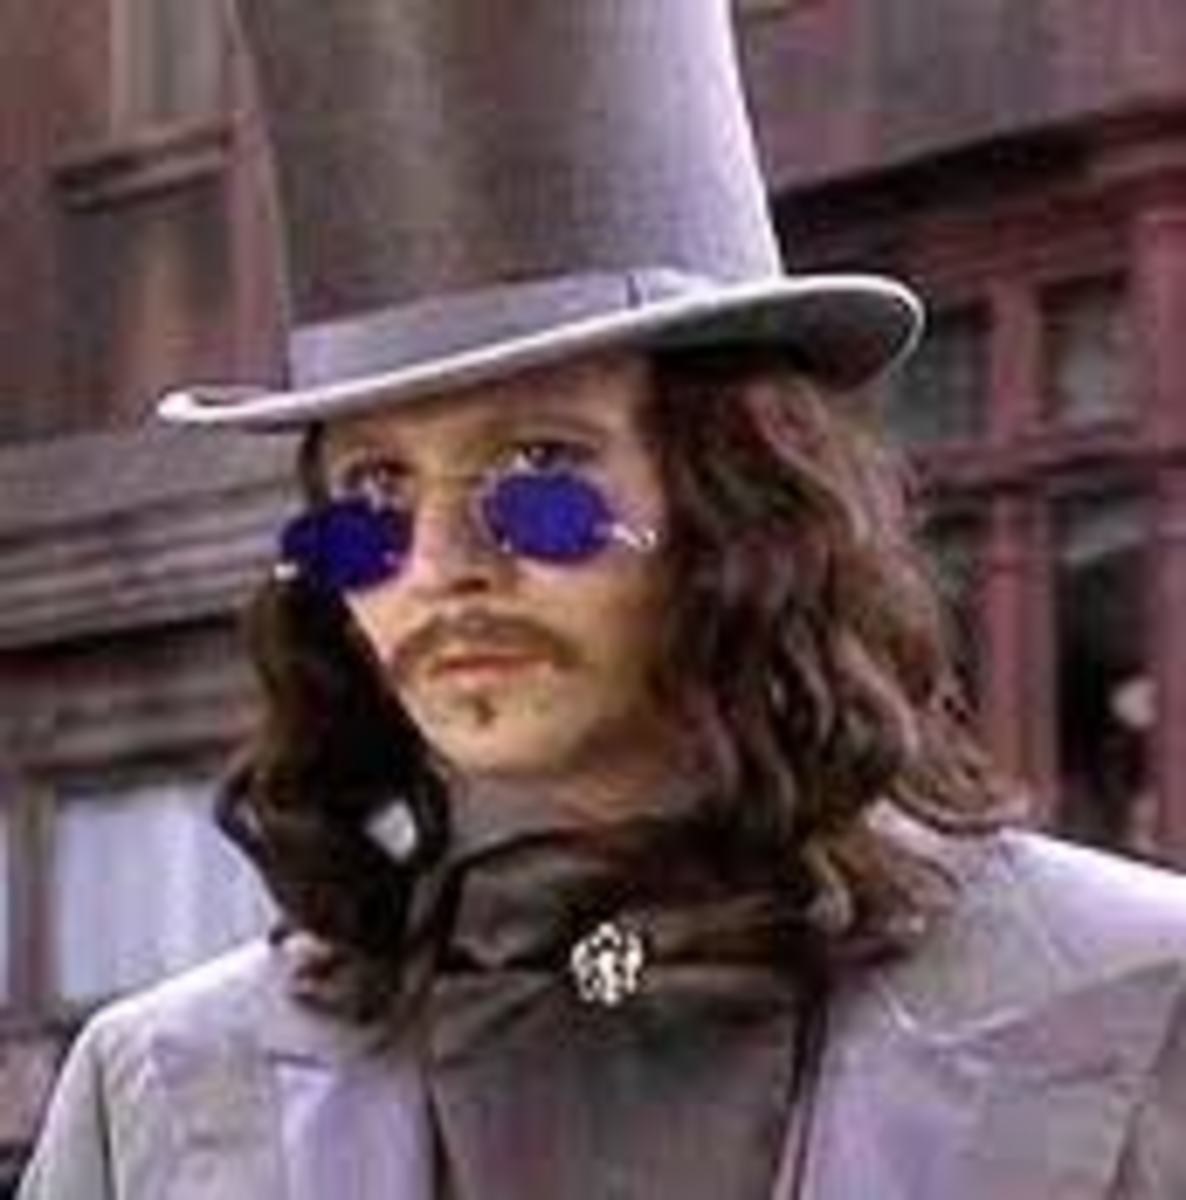 Gary Oldman as Dracula looks just like me in a top hat and suit.